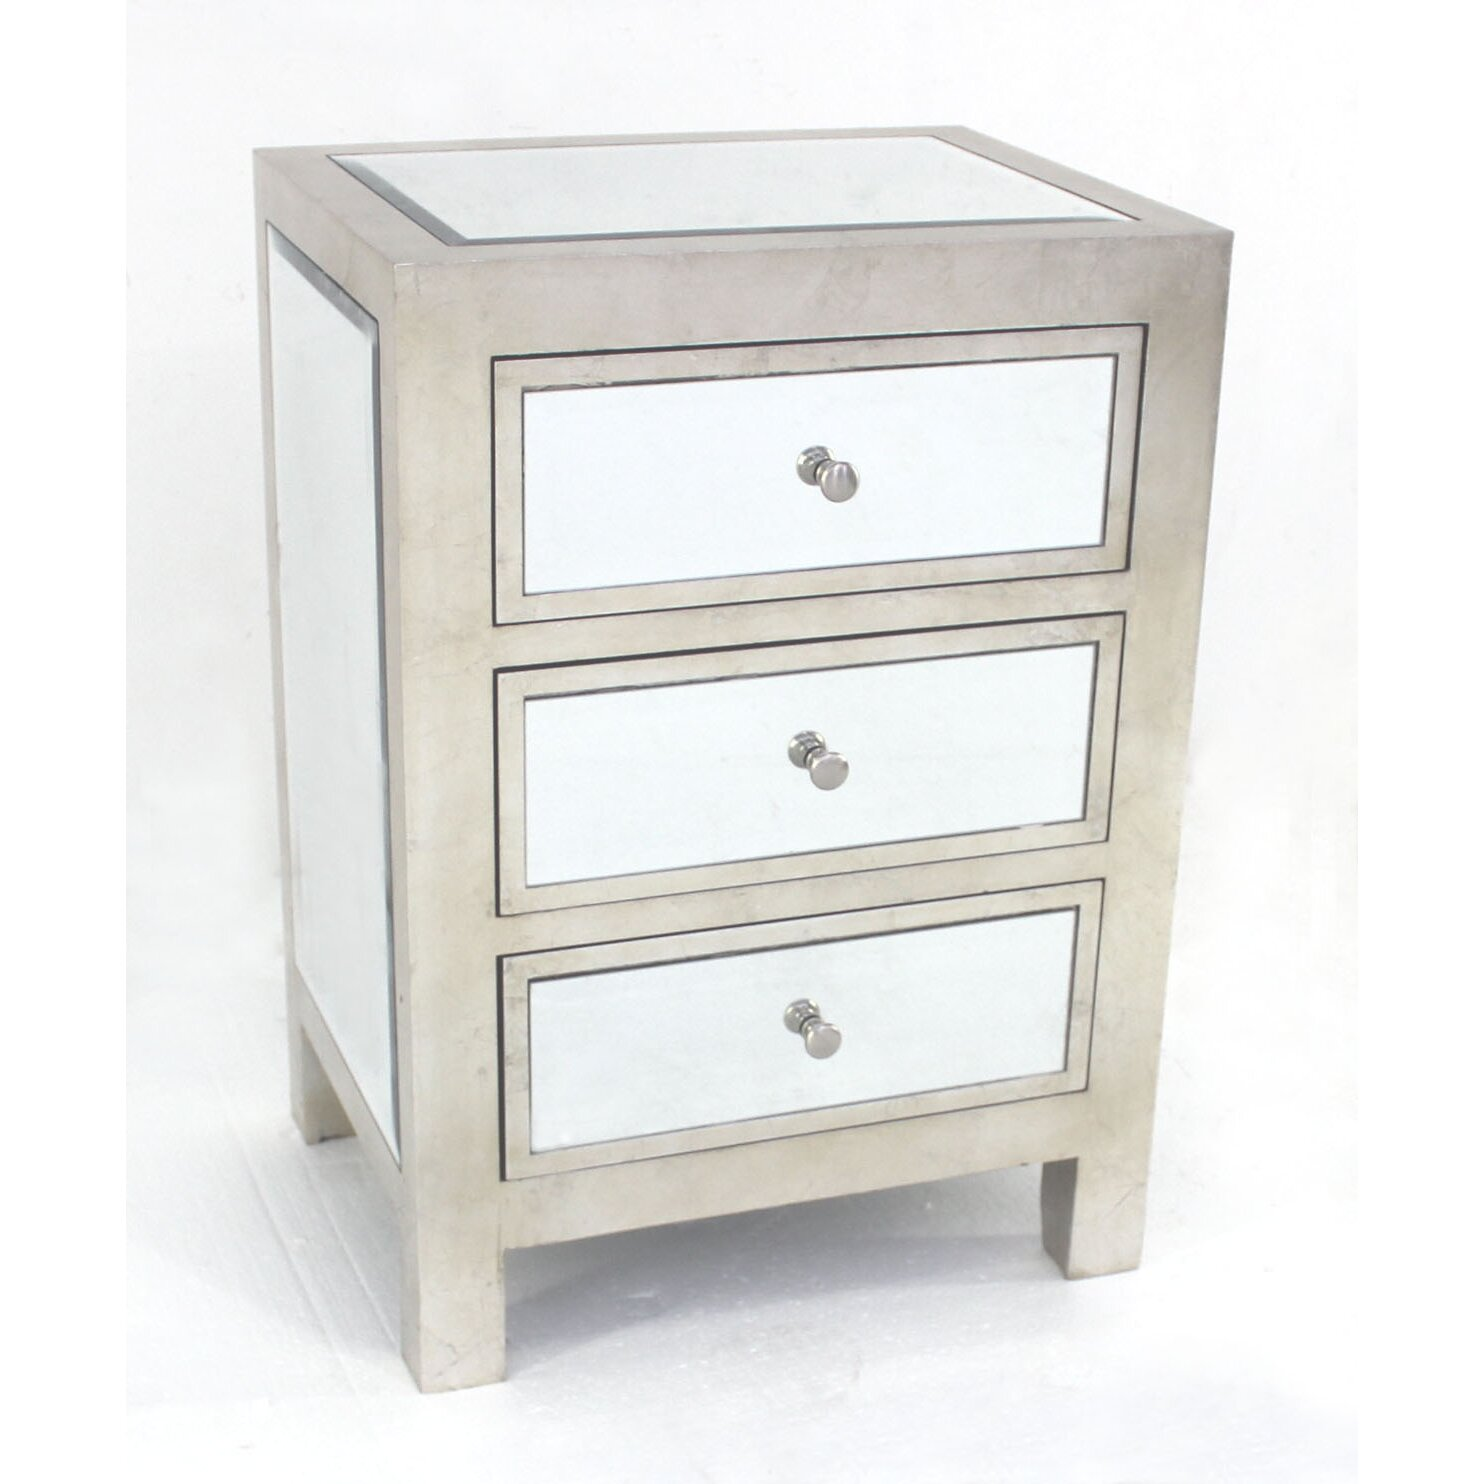 Marvelous photograph of Teton Home Wooden 3 Drawers Wood Cabinet Mirrored AF 083 AF 083.jpg with #6E665D color and 1484x1484 pixels